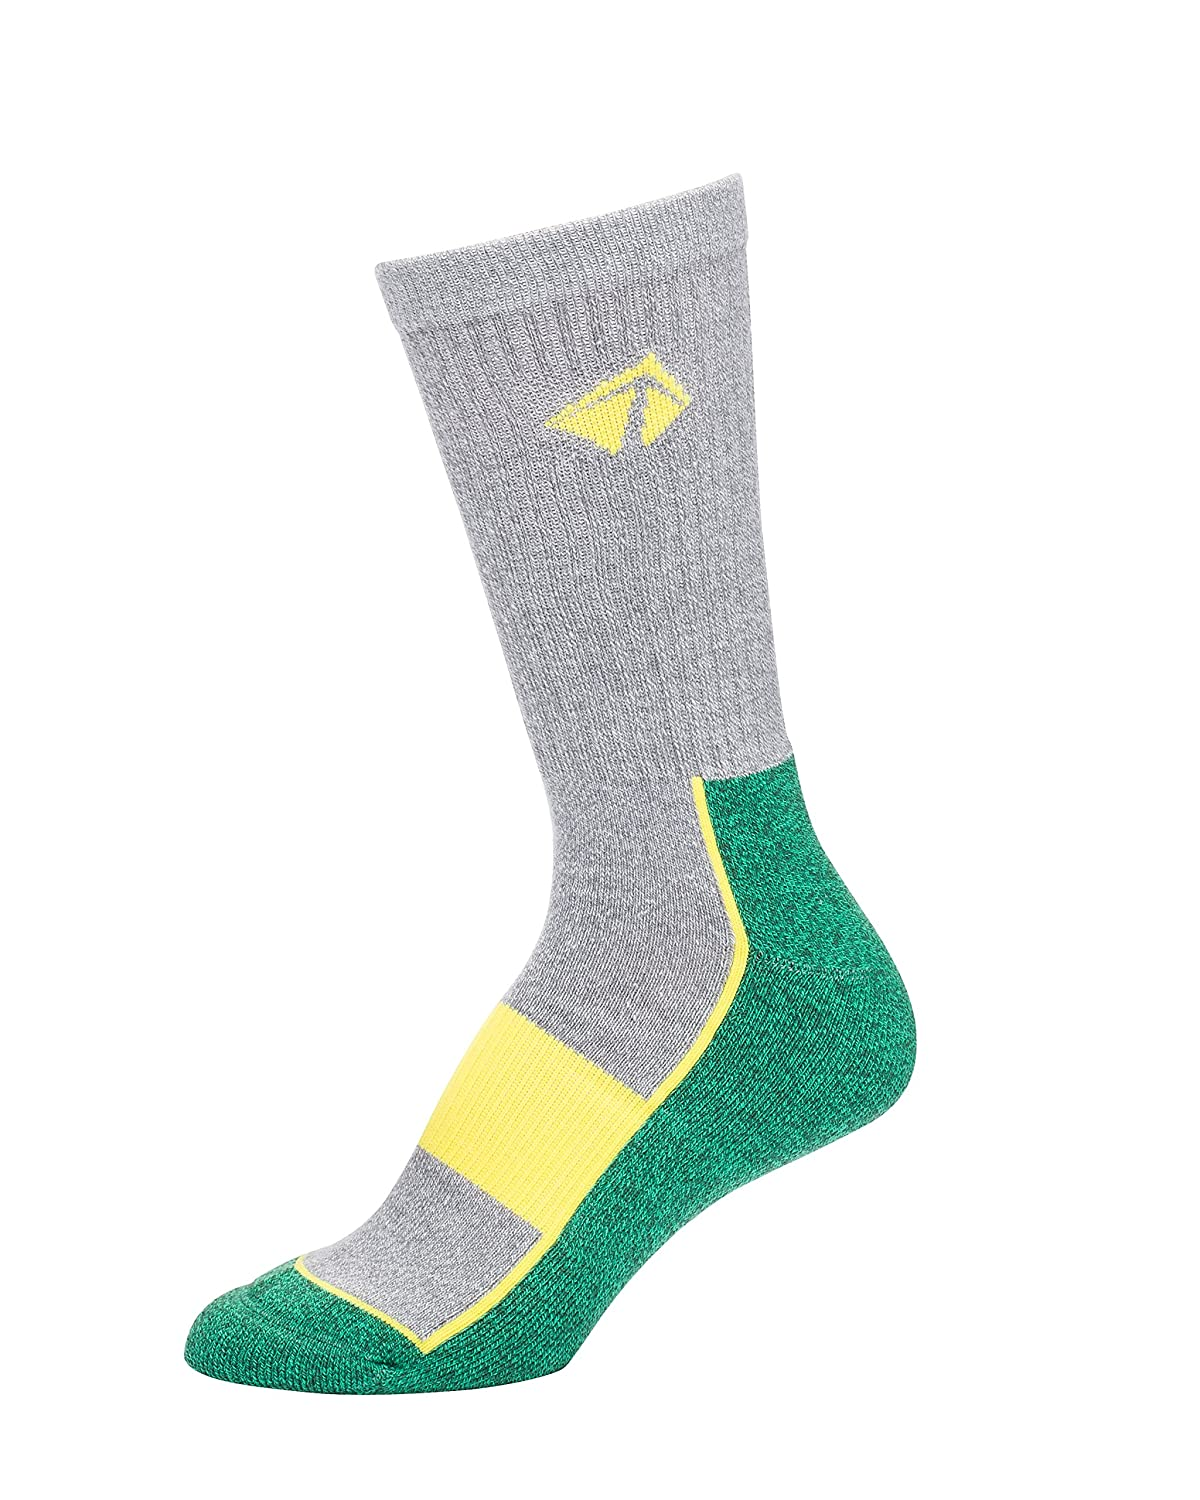 Comfort Compression Fit LIFT 23 Atacama Moisture Wicking Performance Socks